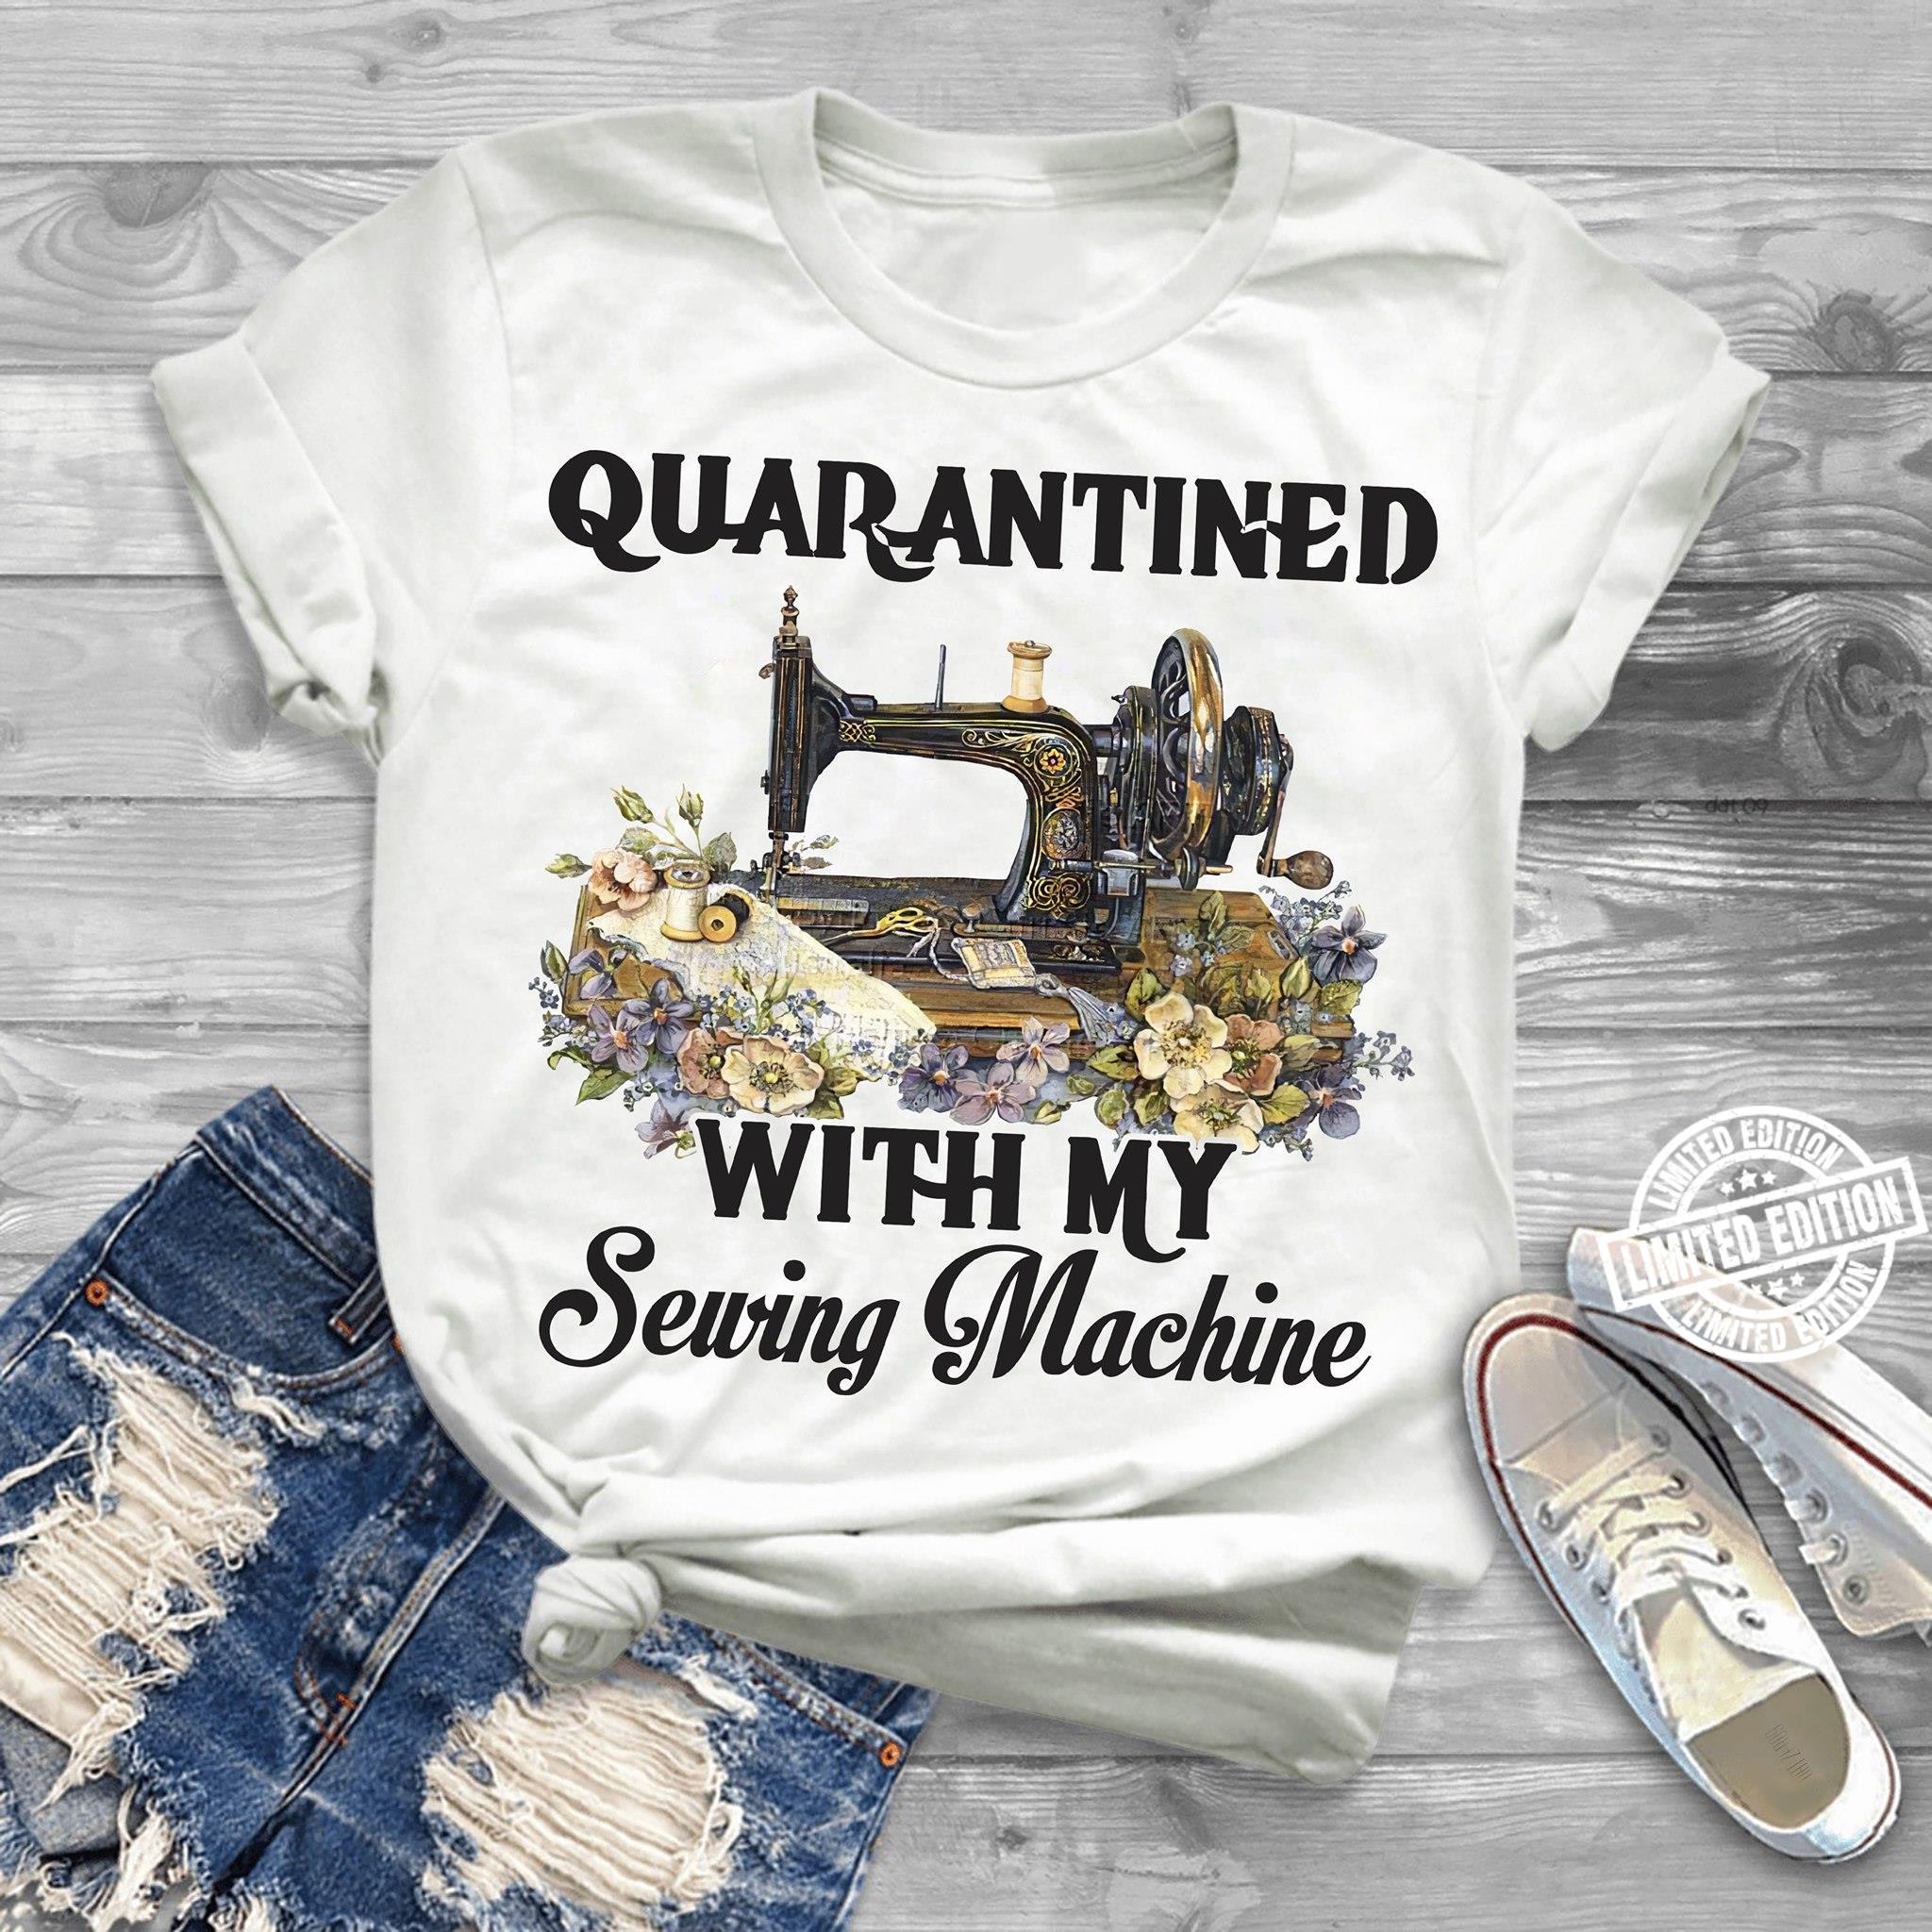 Quarantined with my sewing machine shirt